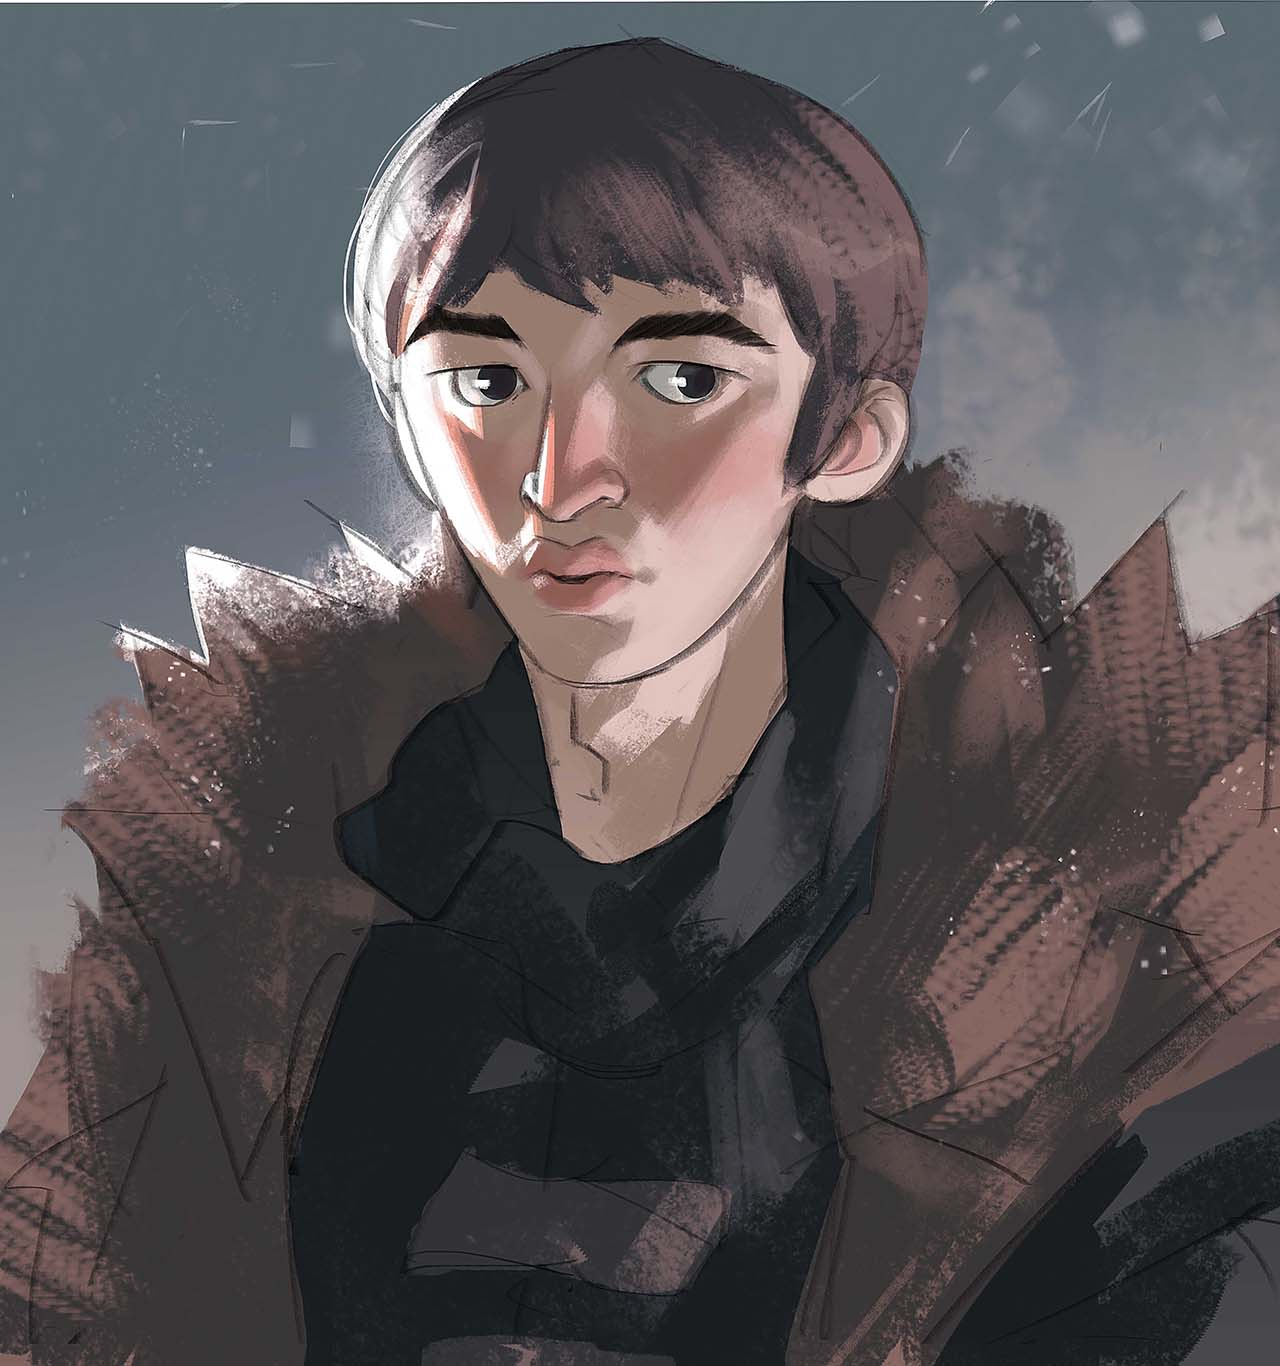 Artist Creates Unique Character Arts From Game Of Thrones – Bran Stark Character Art By Ramón Nuñez